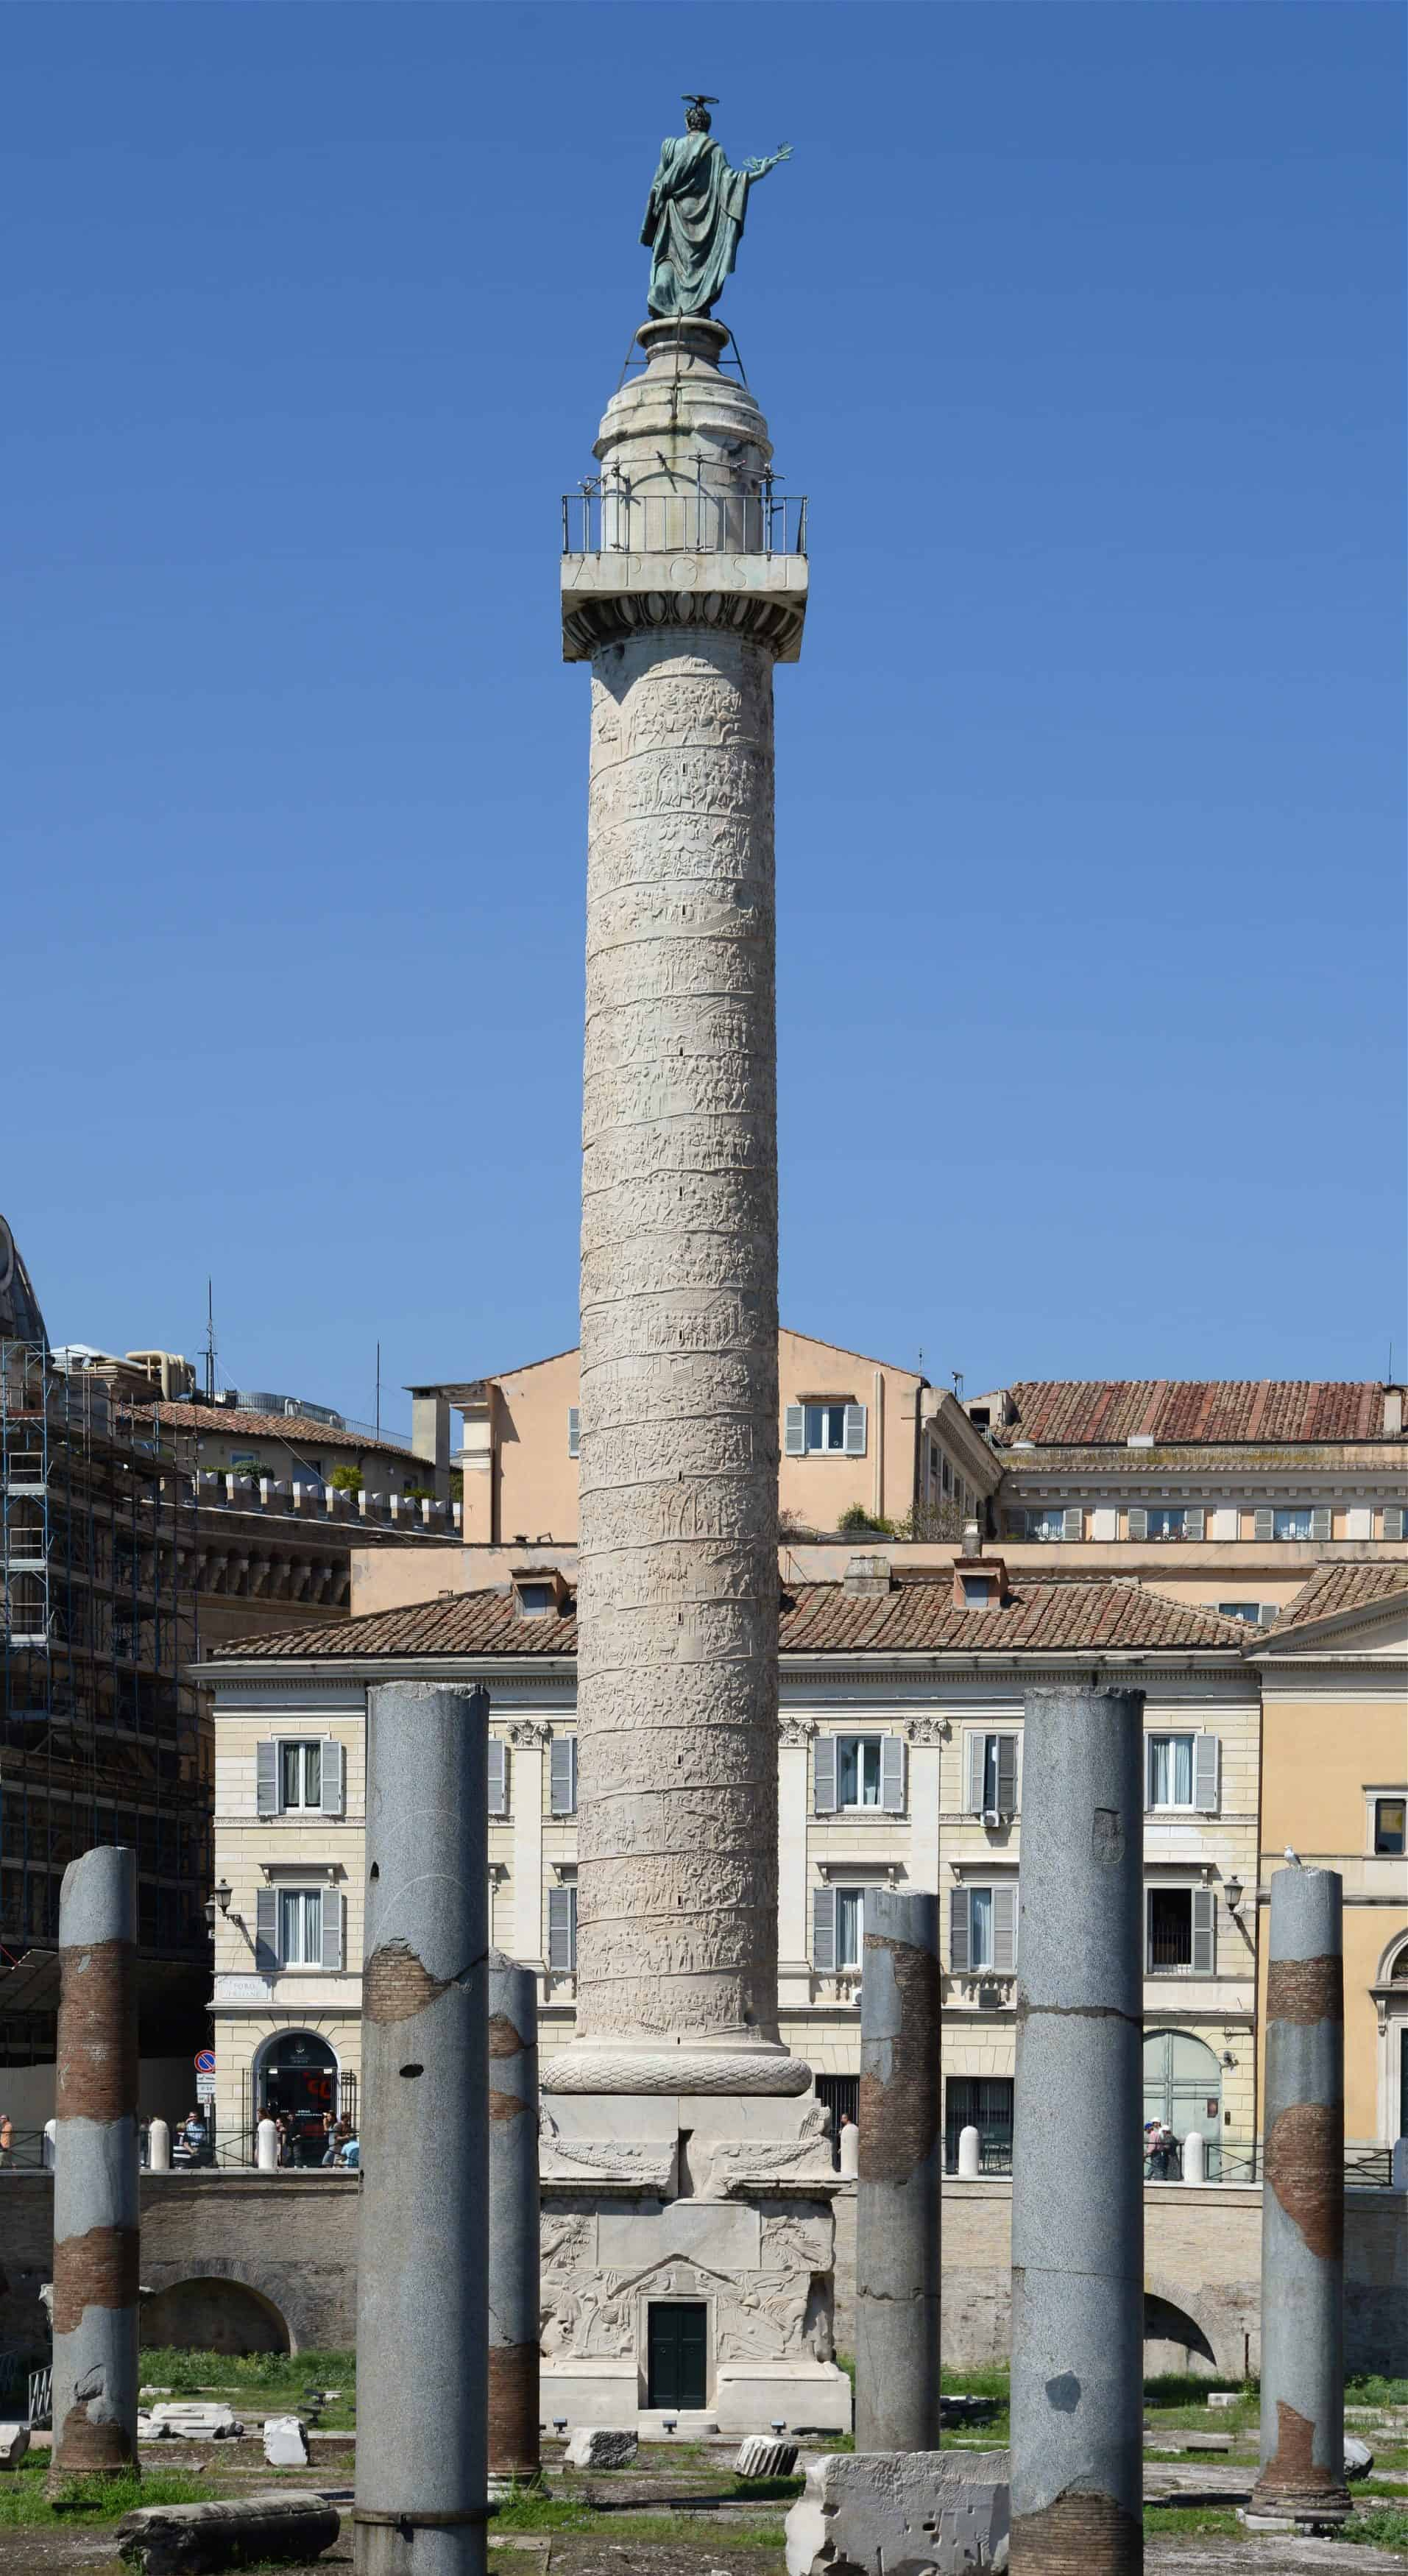 The Trajan Columns in Rome, things to do in Rome, St. Peter's Square, St. Peter's Dome in Rome, visit Rome in winter, Rome in winter, winter in Rome, Vatican city, 2-3 days Rome itinerary